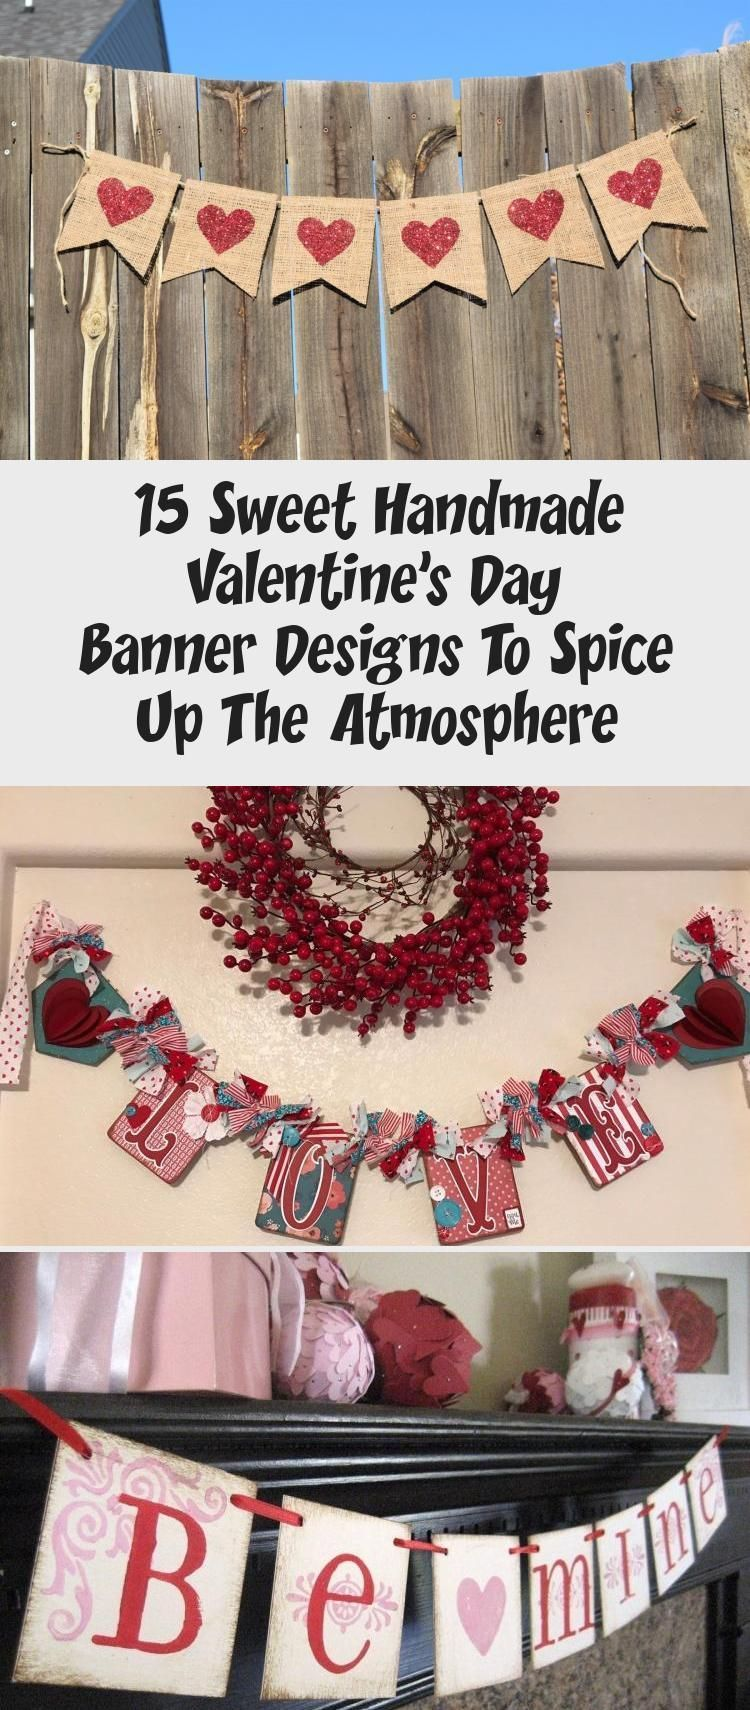 15 Sweet Handmade Valentines Day Banner Designs To Spice Up The Atmosphere bannerPublicidad banner 15 Sweet Handmade Valentines Day Banner Designs To Spice Up The Atmosph...